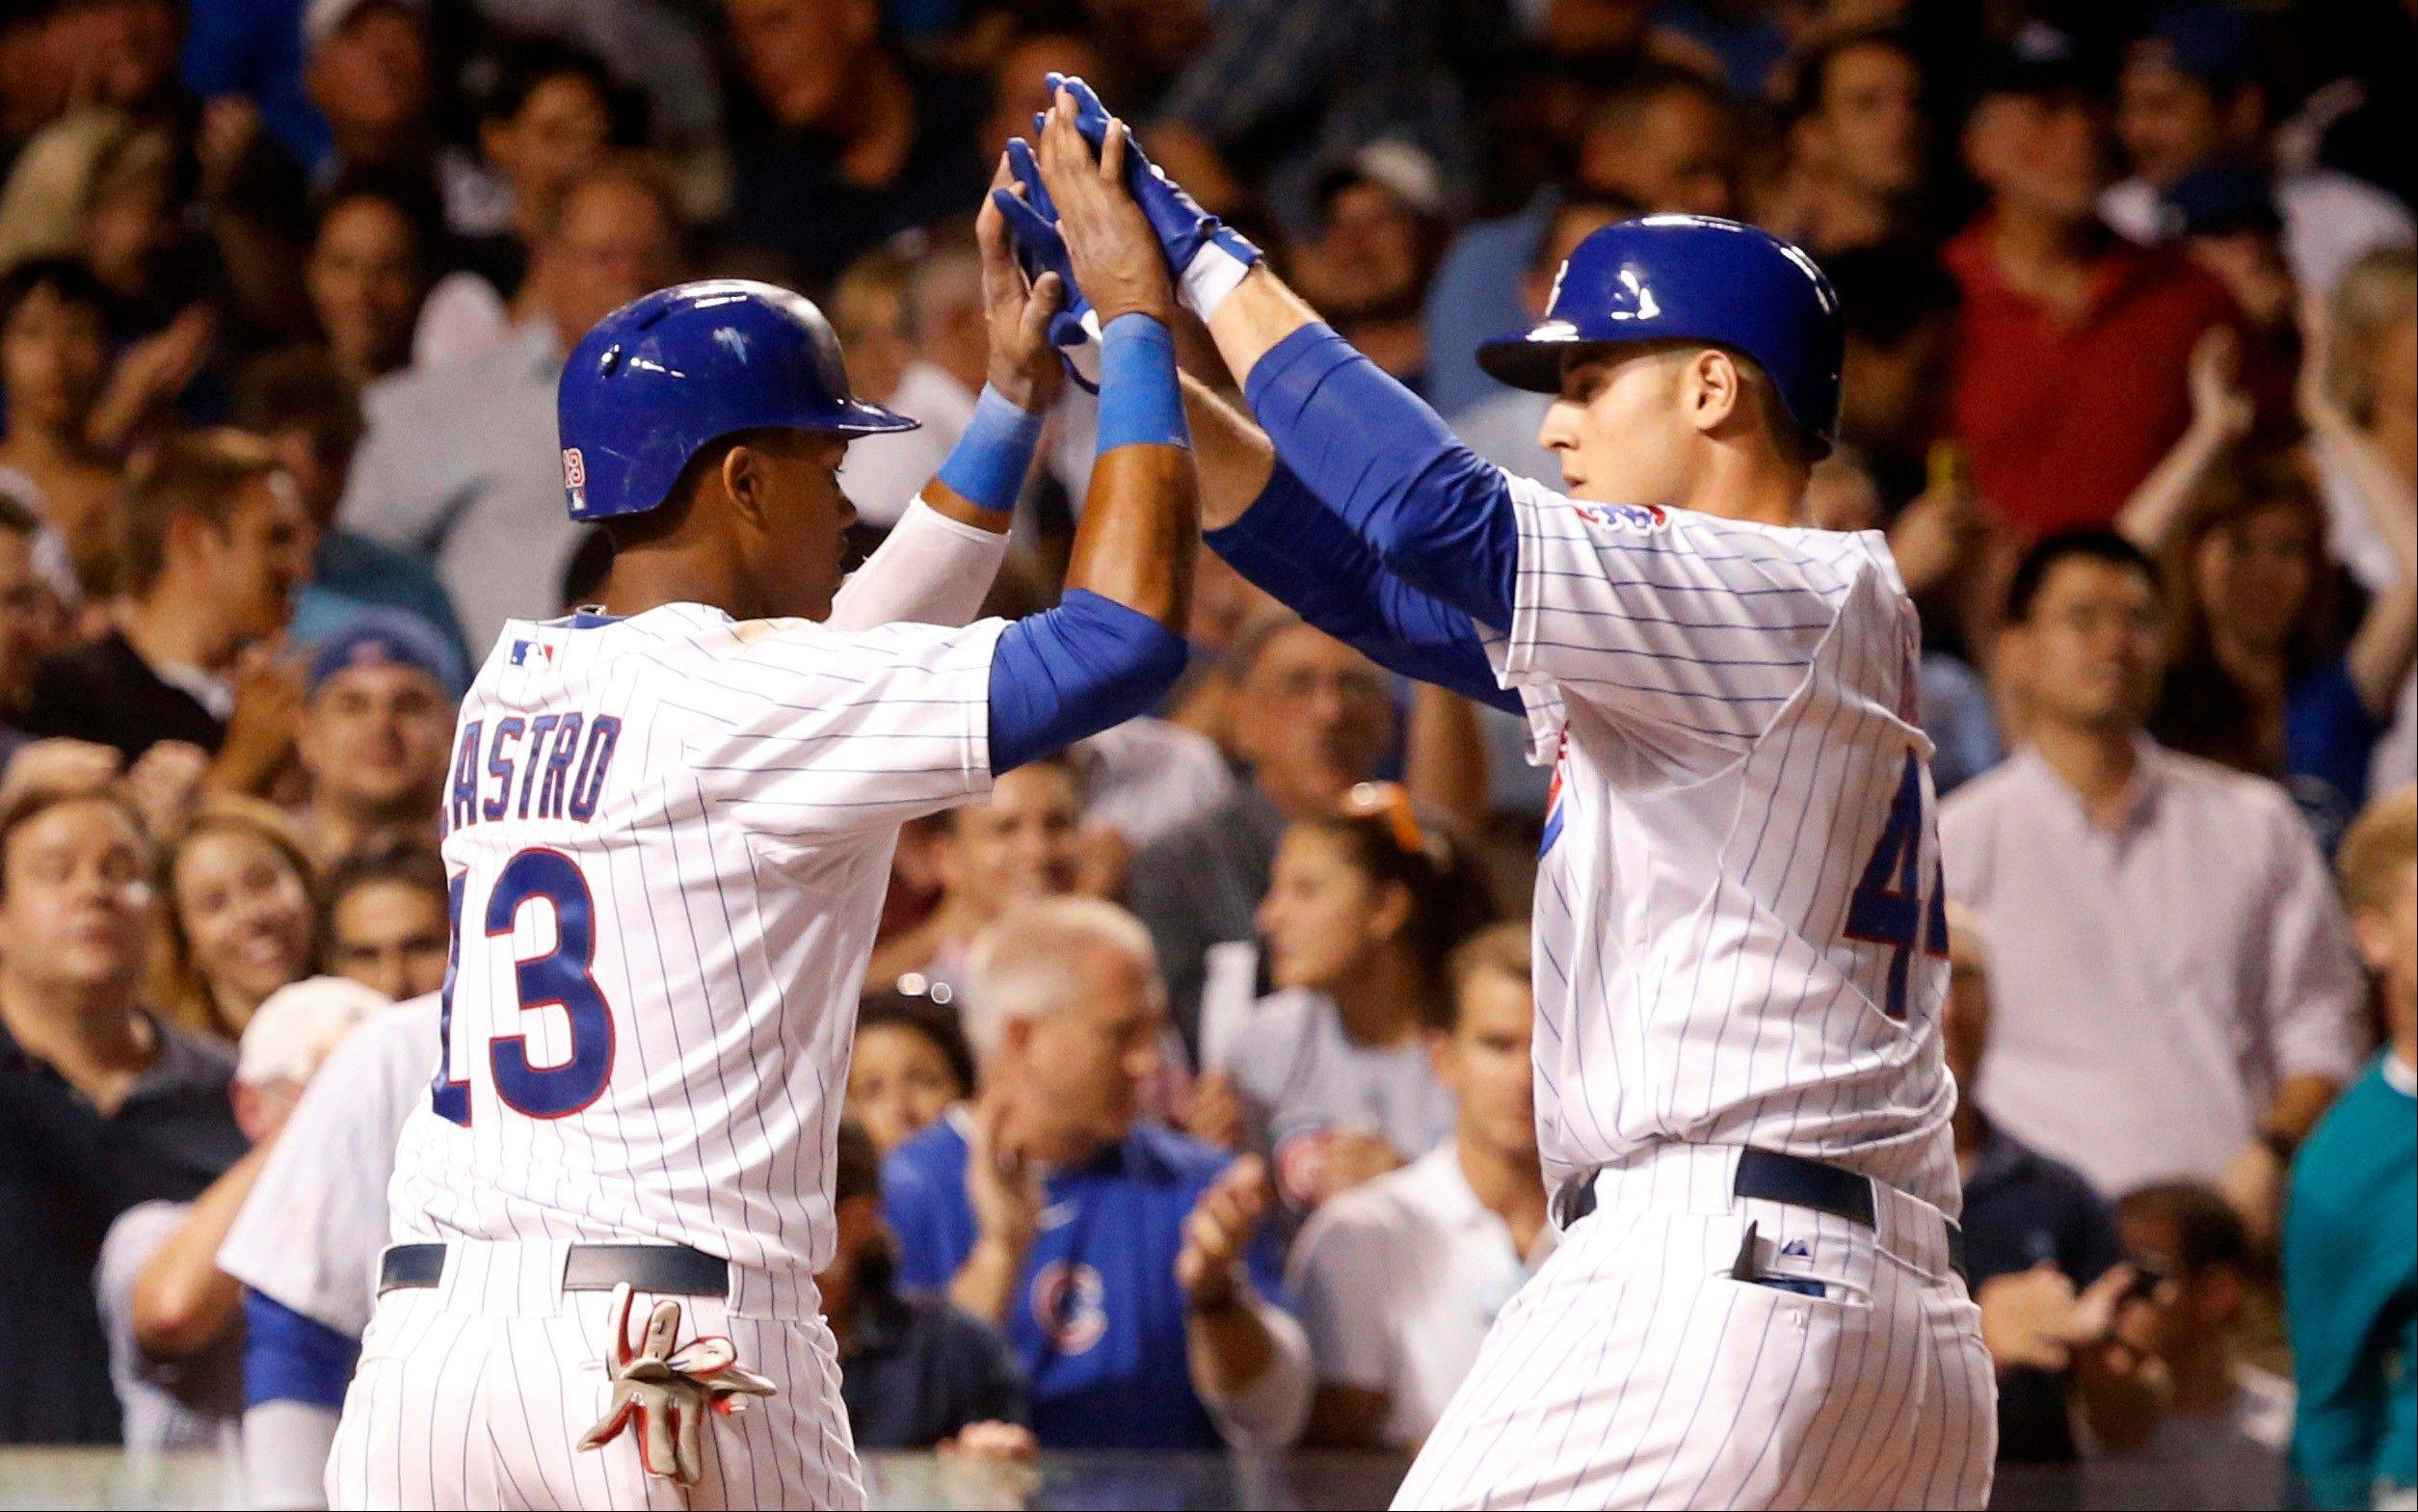 Will new Cubs manager Rick Renteria get more from Anthony Rizzo, right, and Starlin Castro, the core of the Cubs lineup?